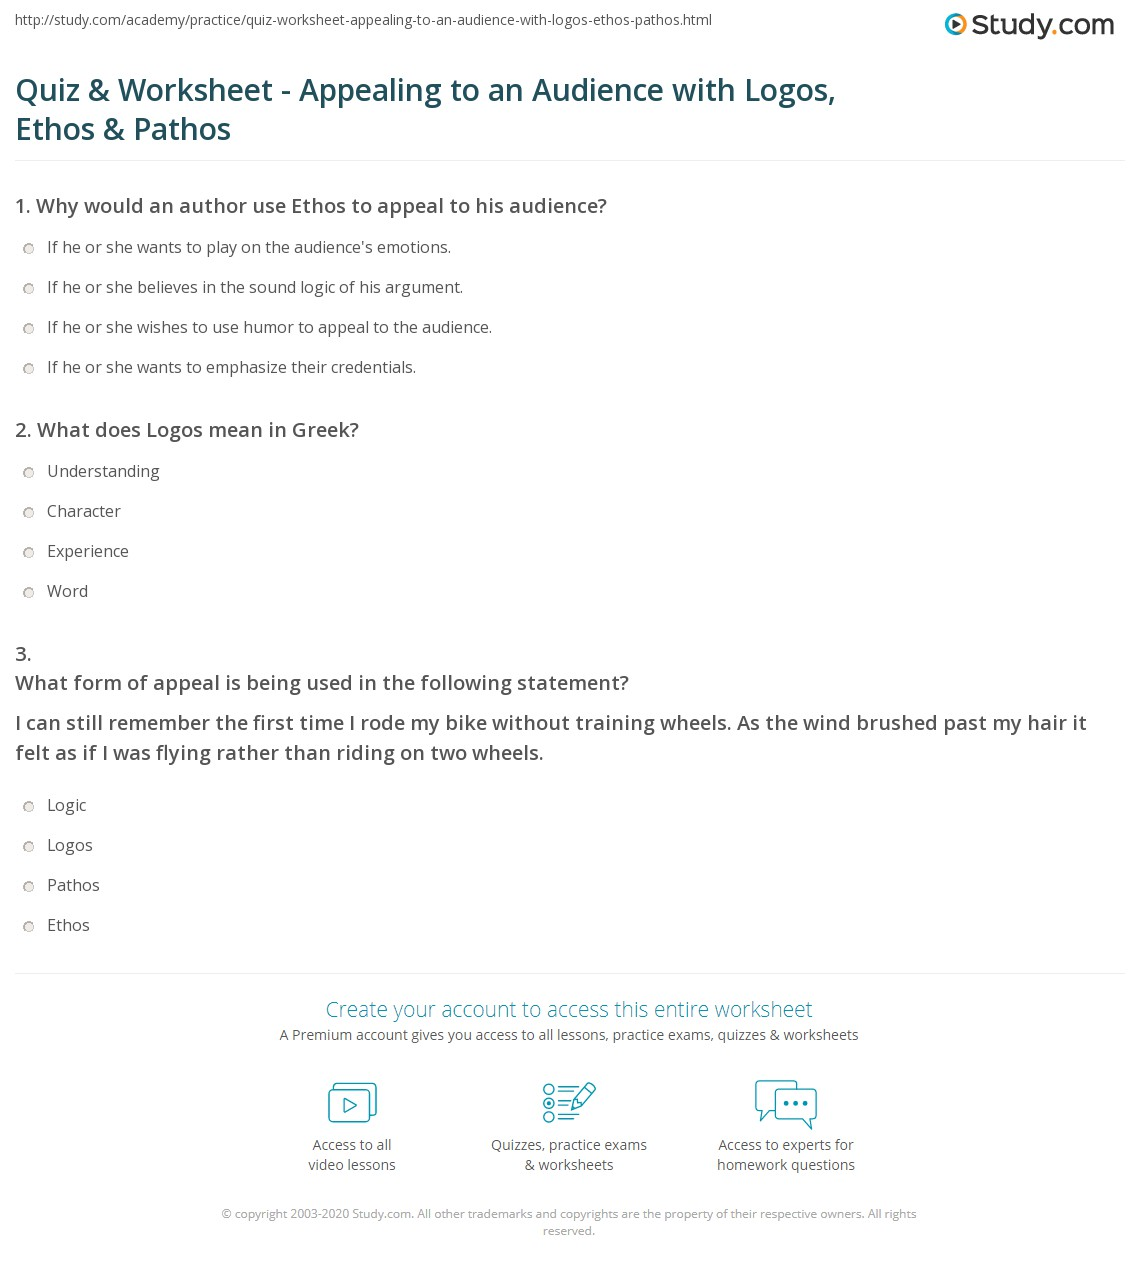 quiz worksheet appealing to an audience logos ethos  print logos ethos and pathos 3 ways to appeal to an audience in essays worksheet